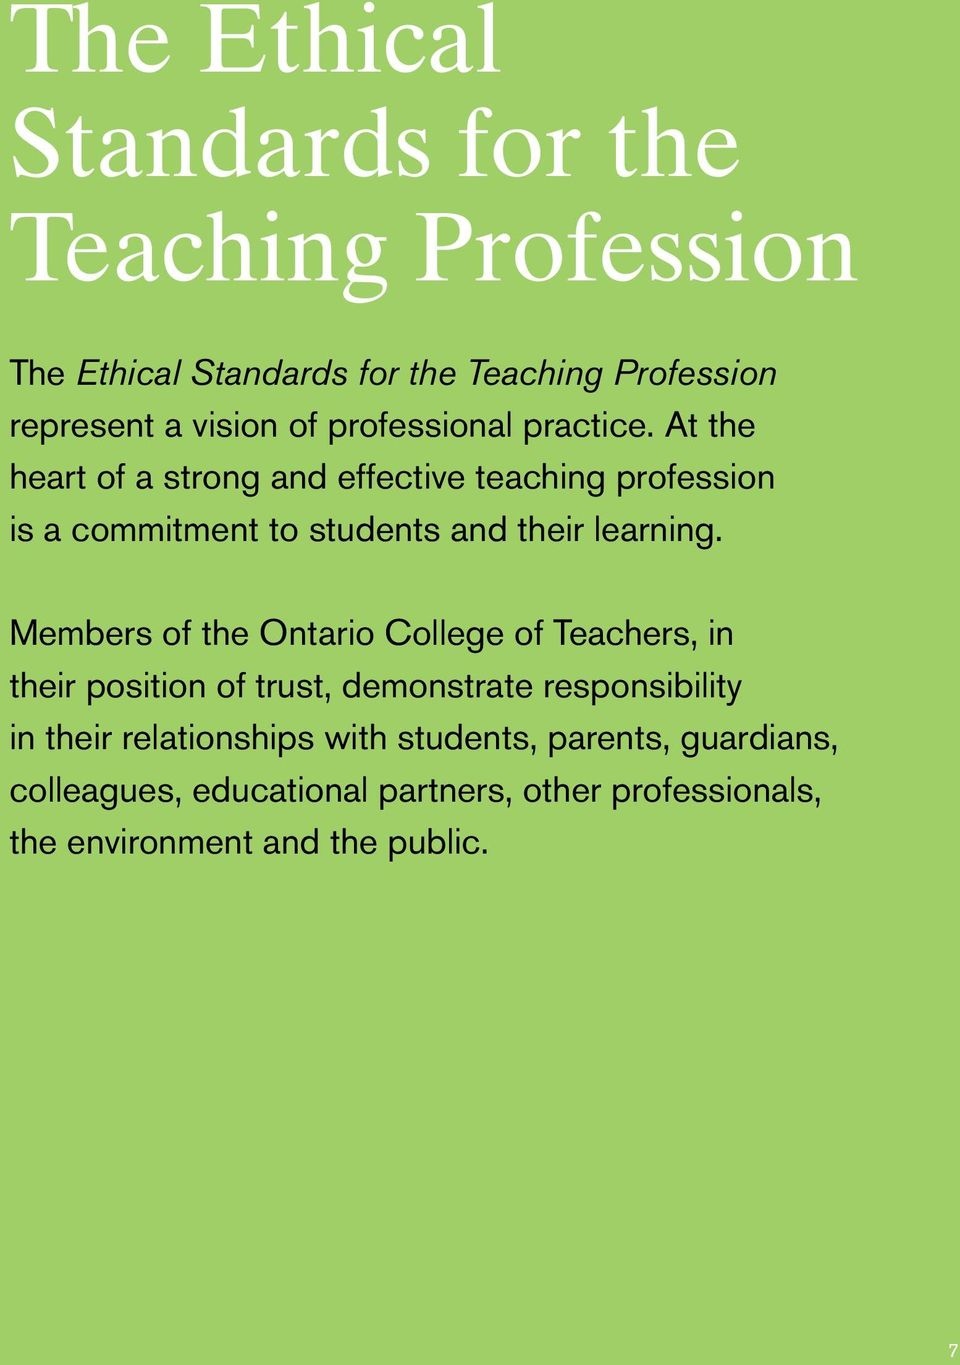 At the heart of a strong and effective teaching profession is a commitment to students and their learning.